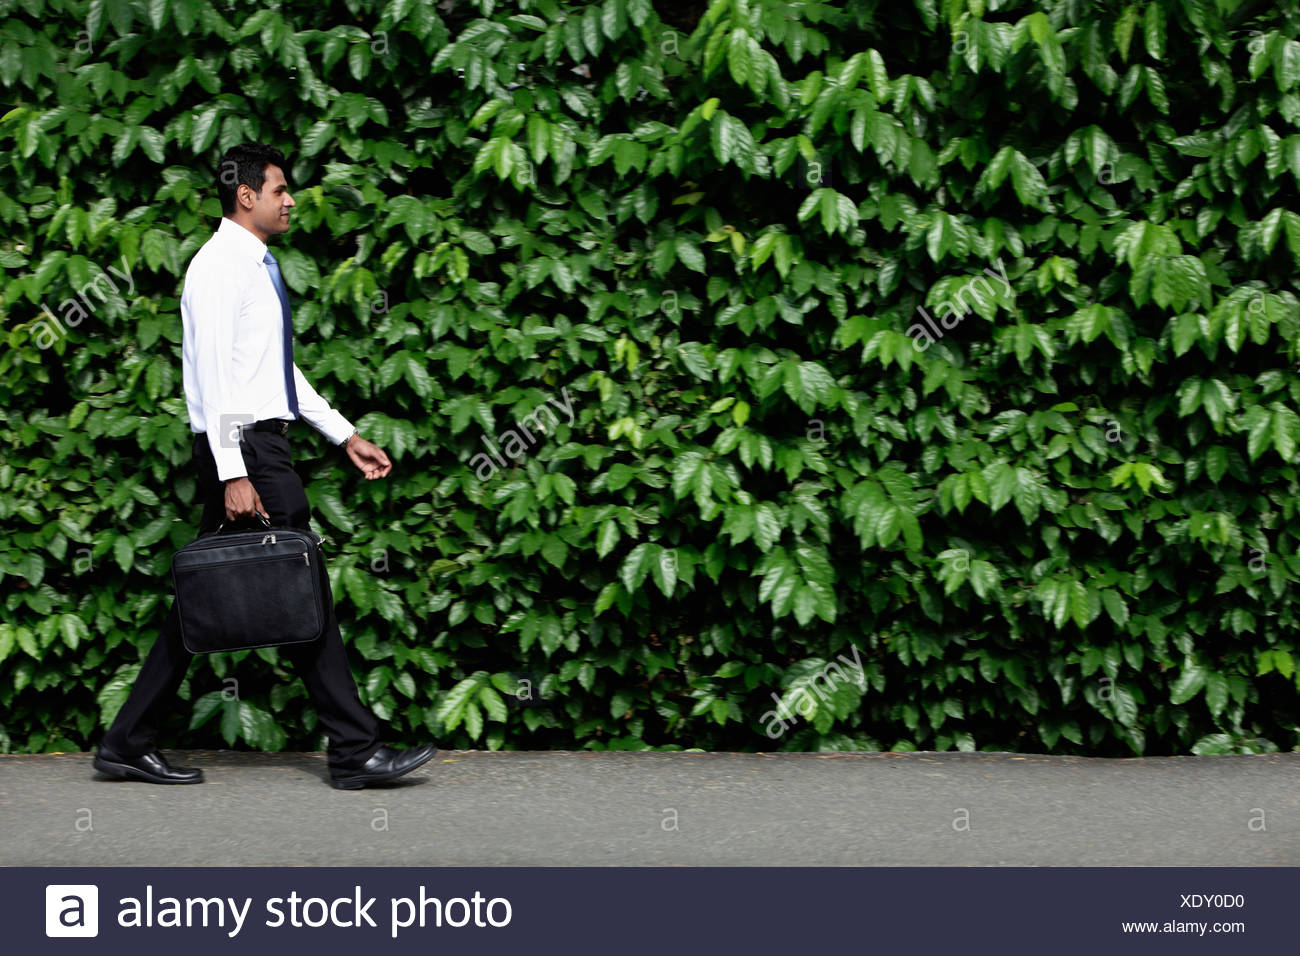 Indian man walking in front of green leafy hedge. - Stock Image